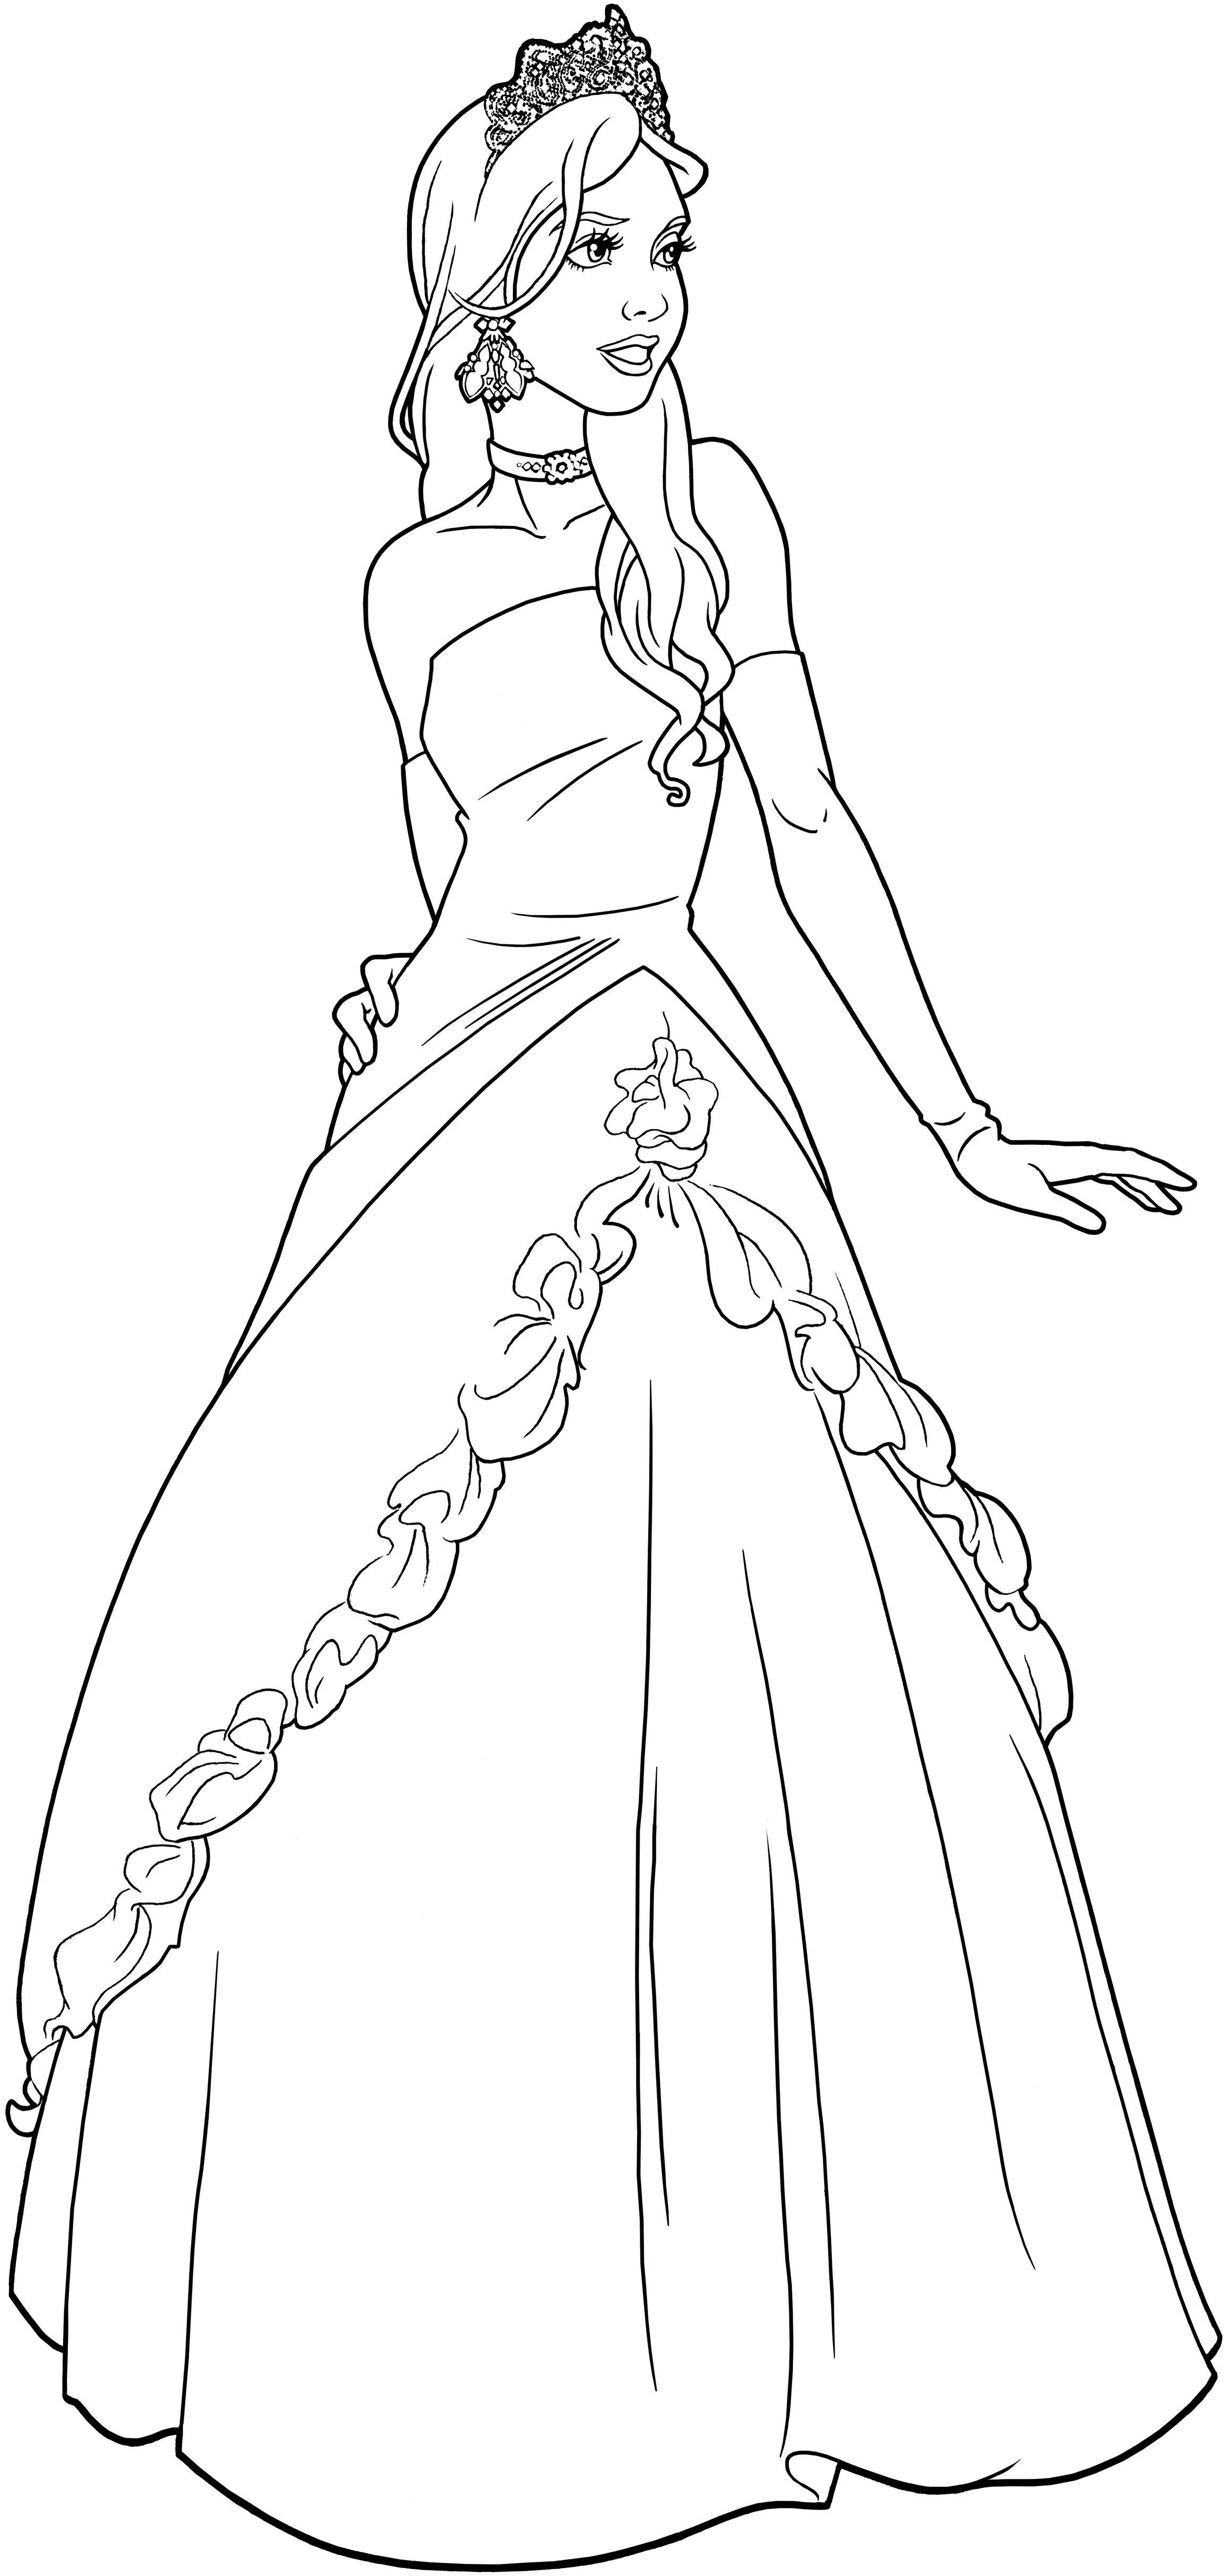 Princess Line Drawing At Getdrawingscom  Free For Personal Use